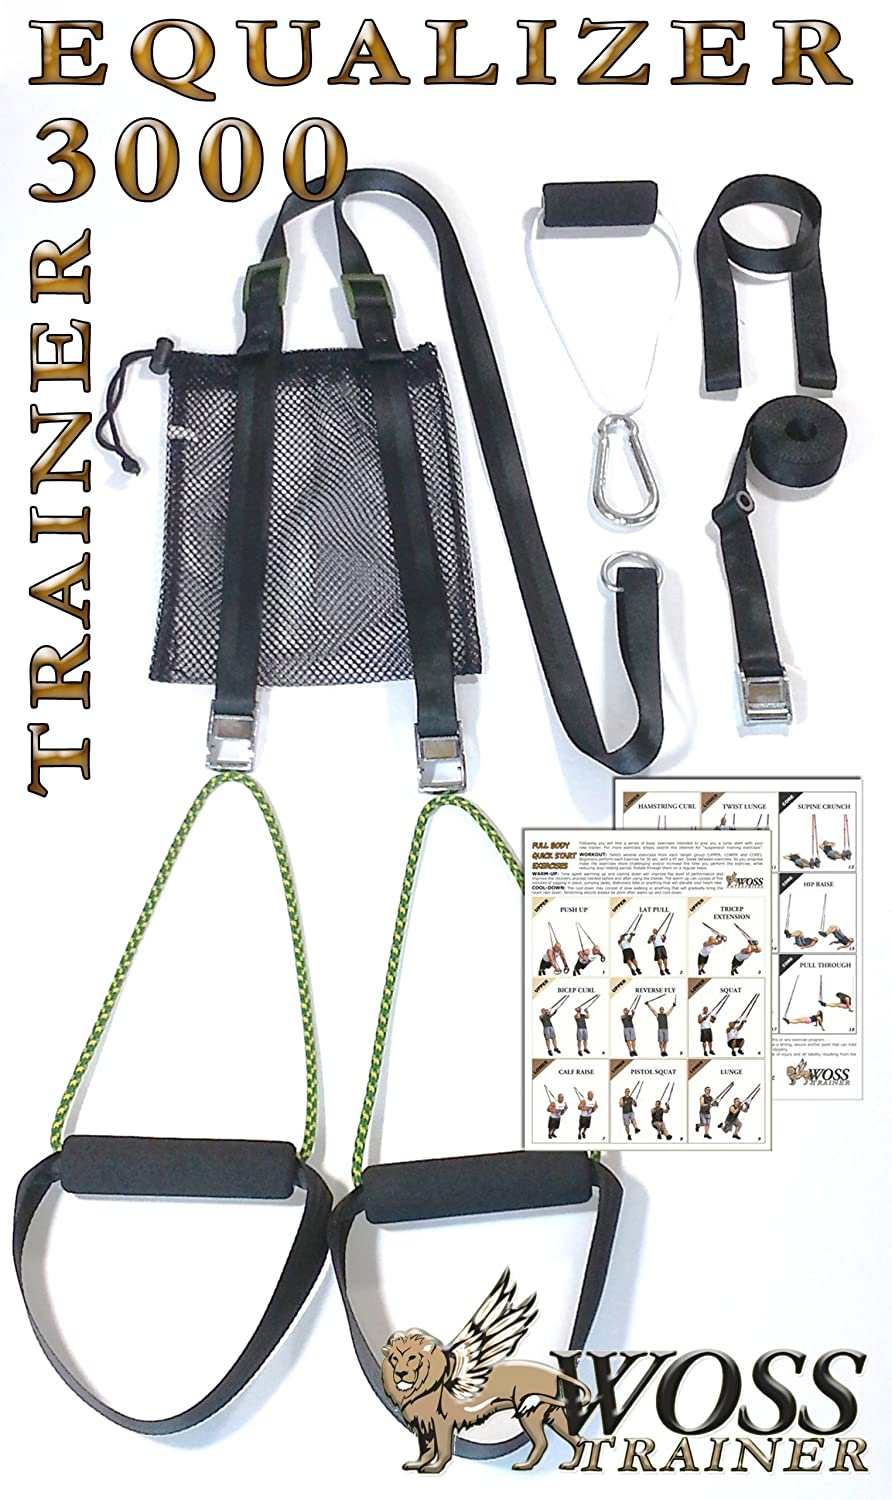 WOSS Enterprises WOSS Suspension Trainer, Black, (3000 Series) - Made In USA, Sold by WOSS Enterprises to All USA States at Sears.com